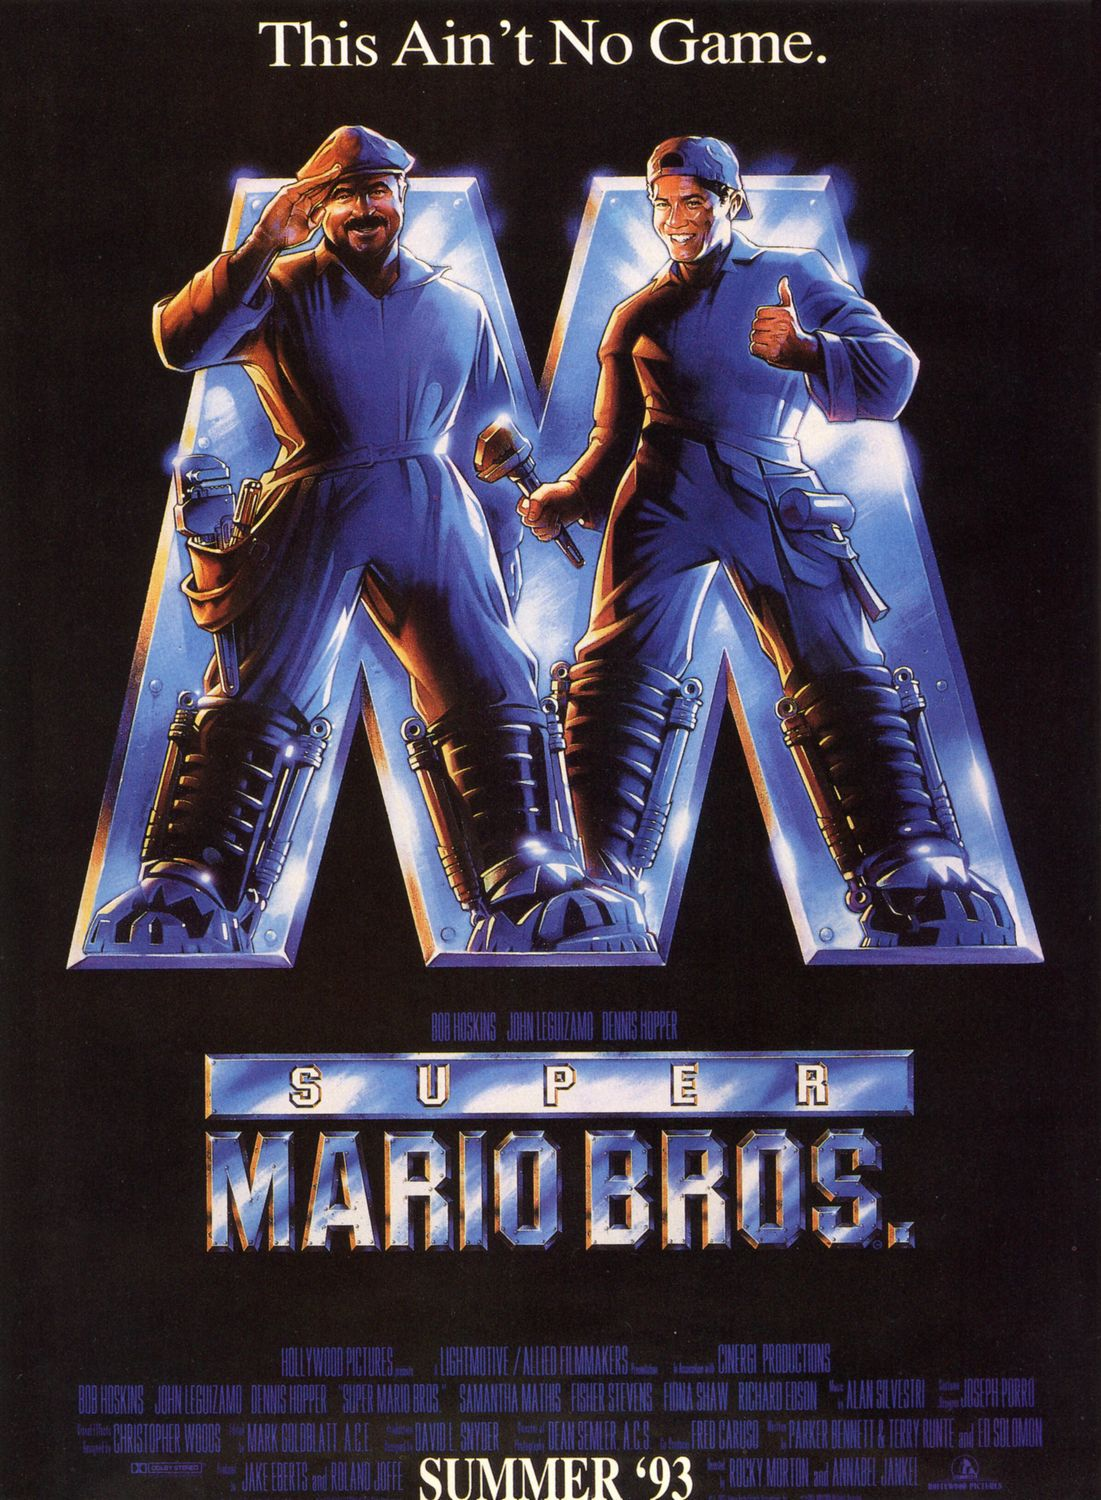 We don't need a new Mario movie, 1993's Super Mario Bros was perfect